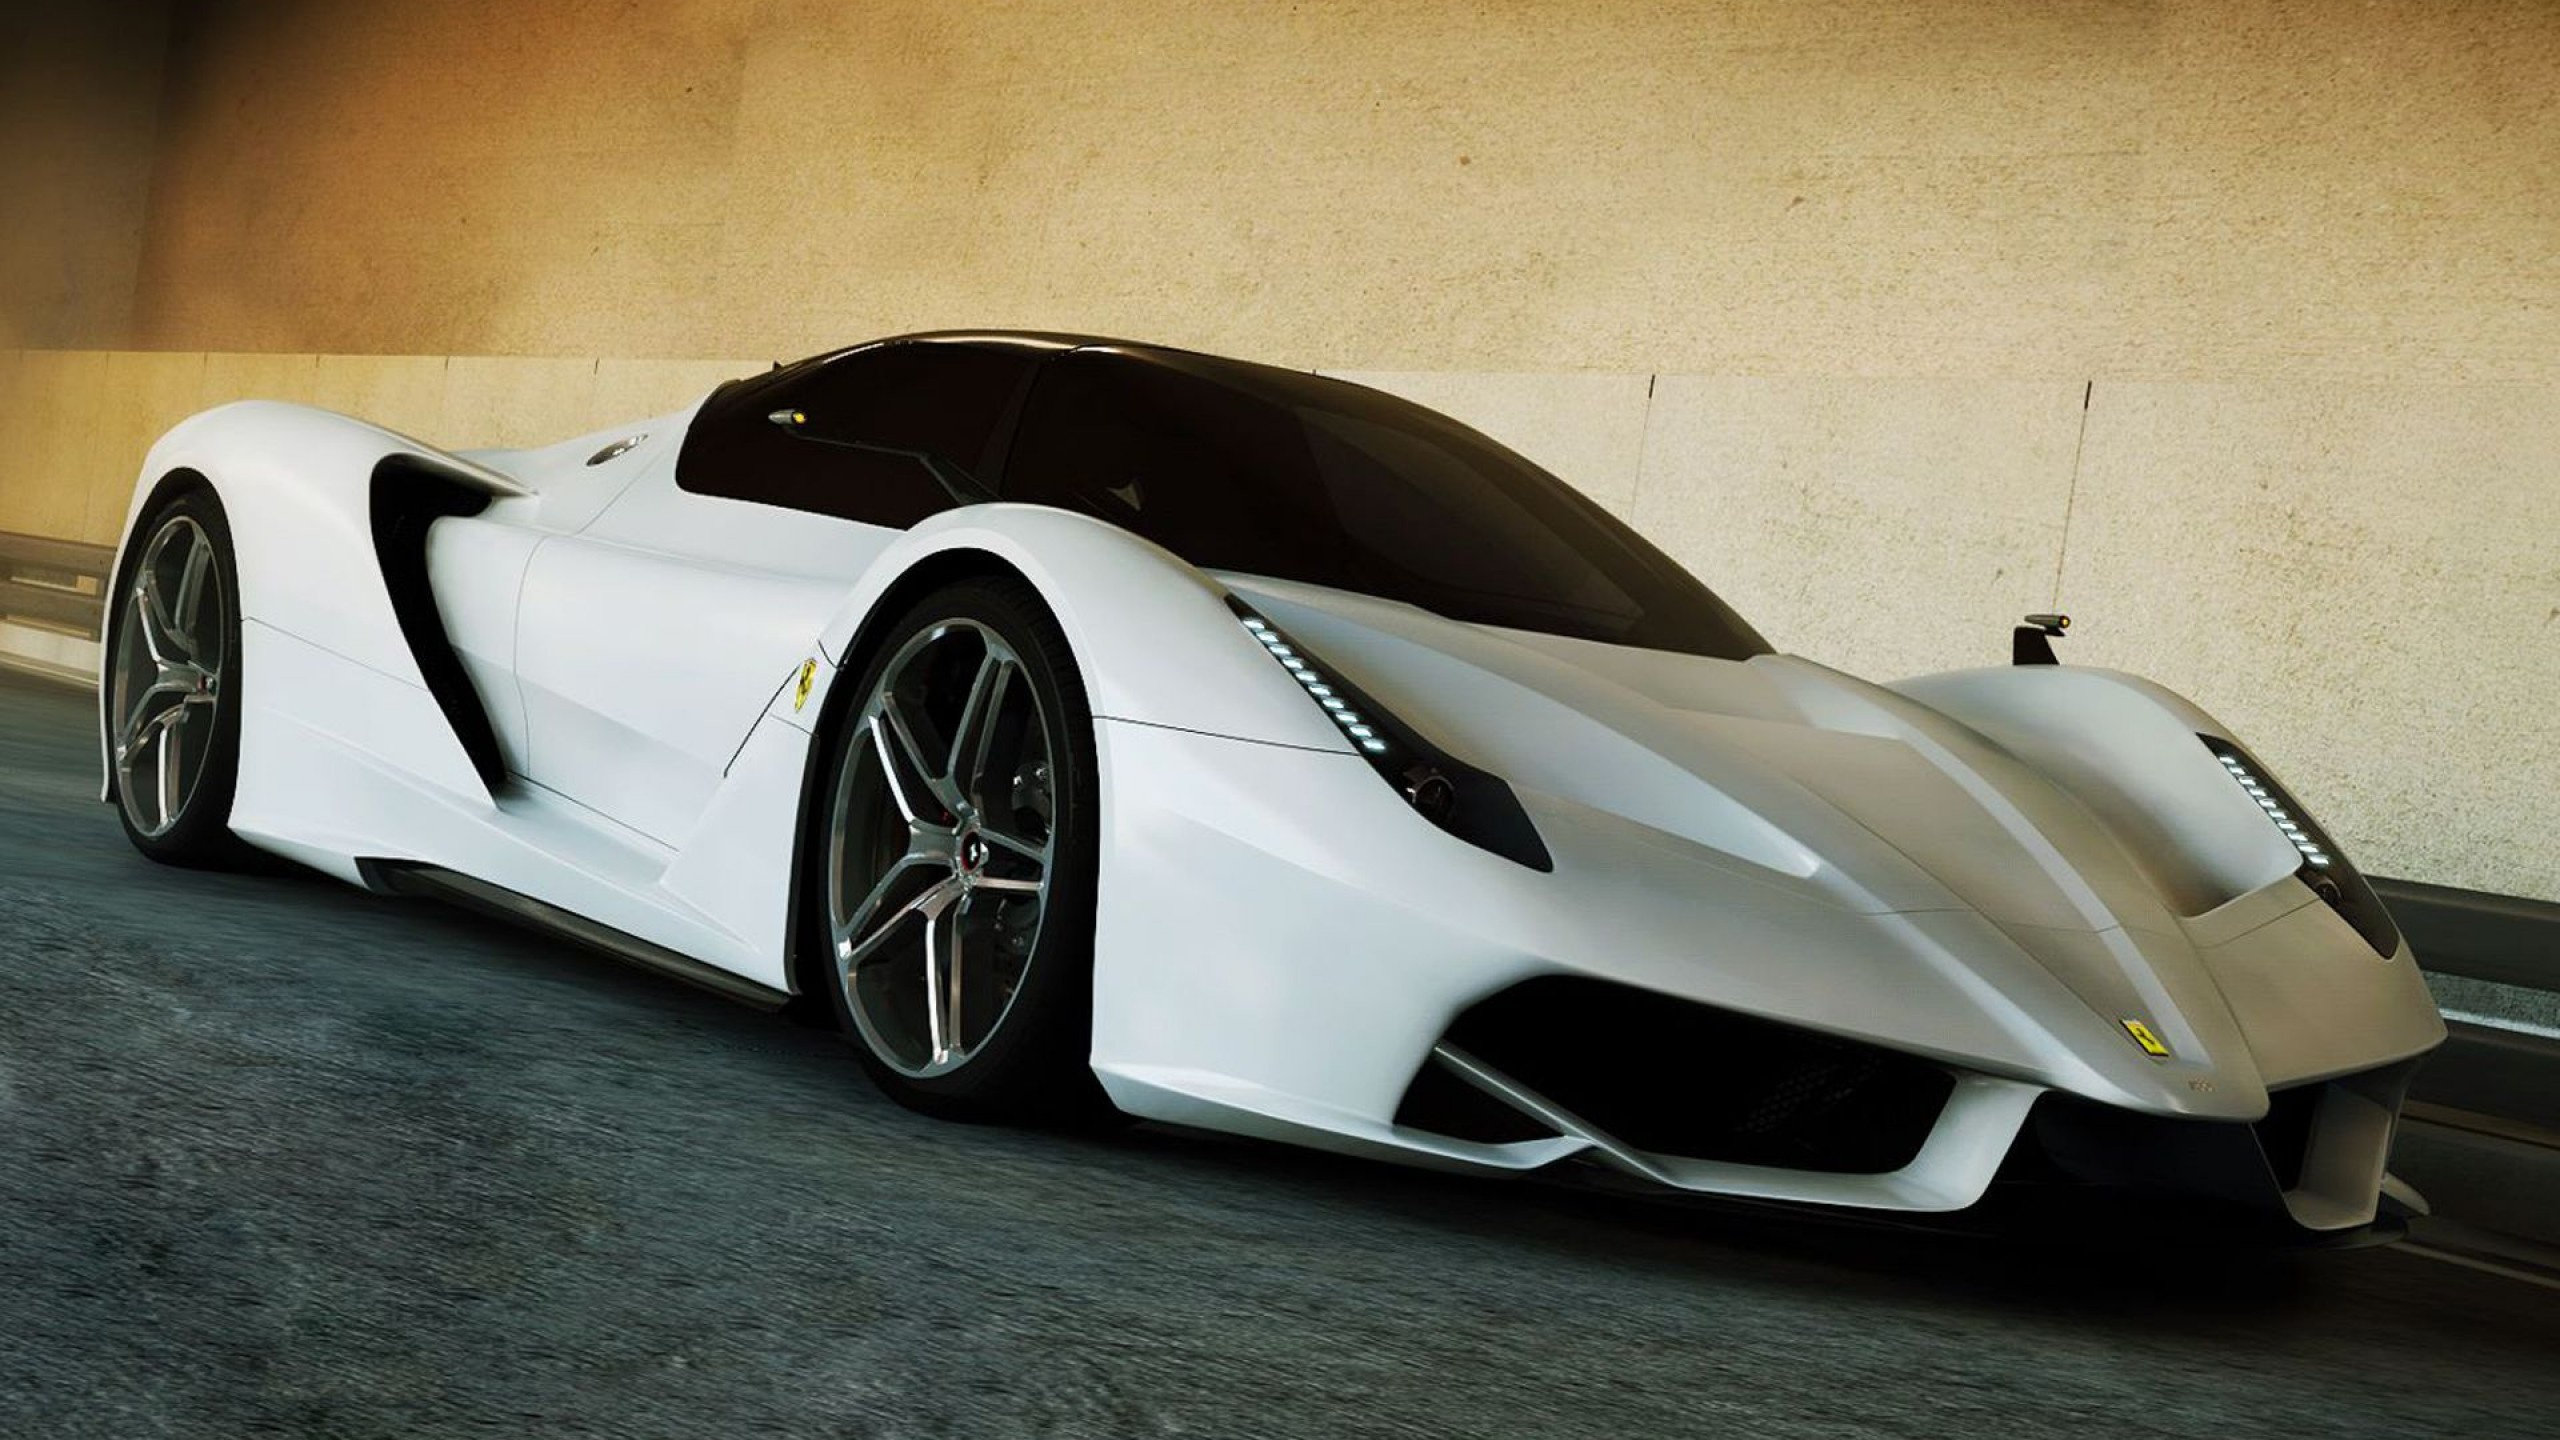 Ferrari on HD Wallpapers backgrounds Ferrari wallpapers 2560x1440